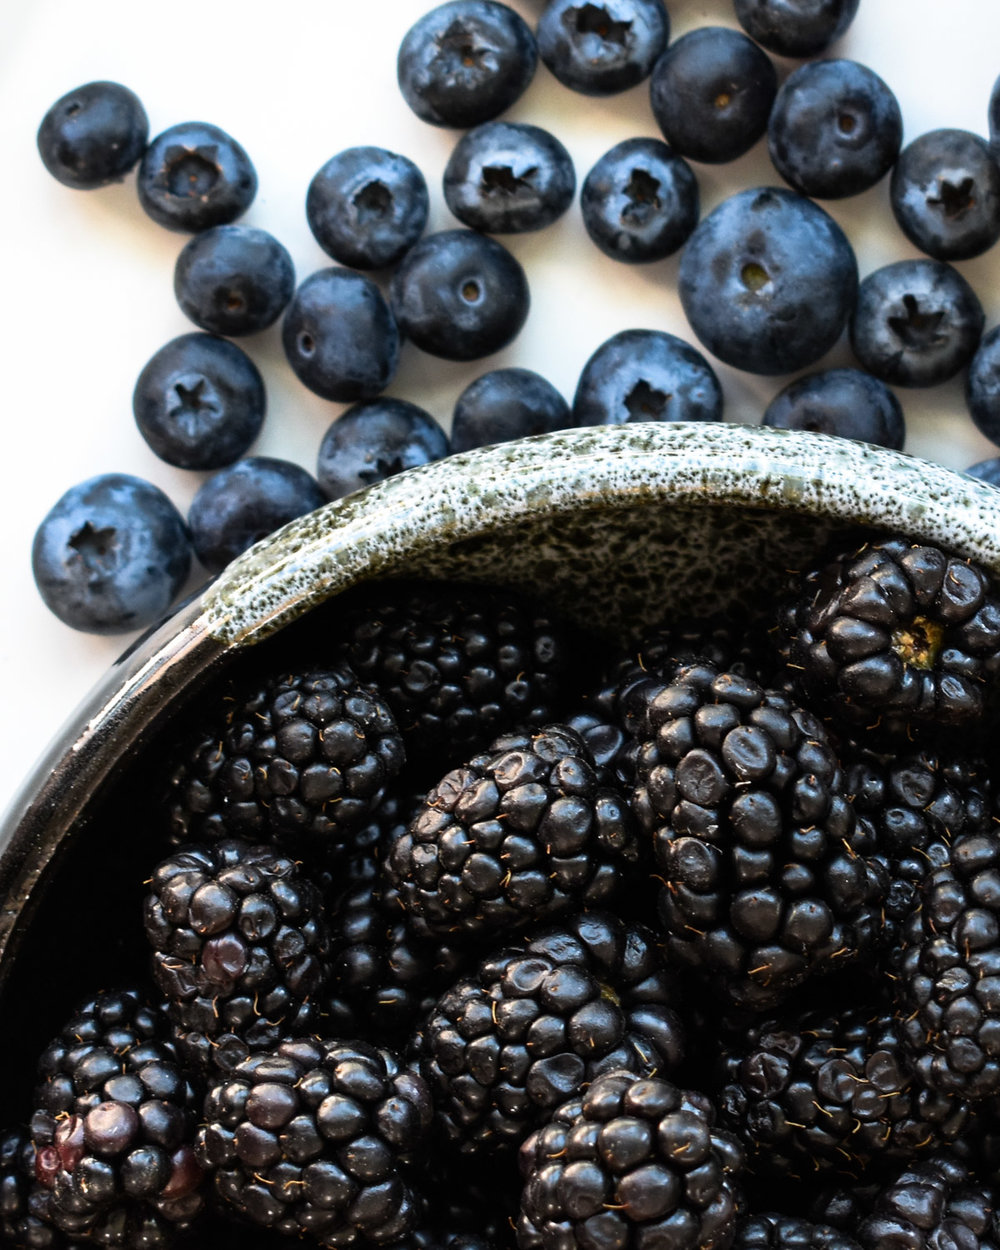 Fresh blackberries and blueberries.